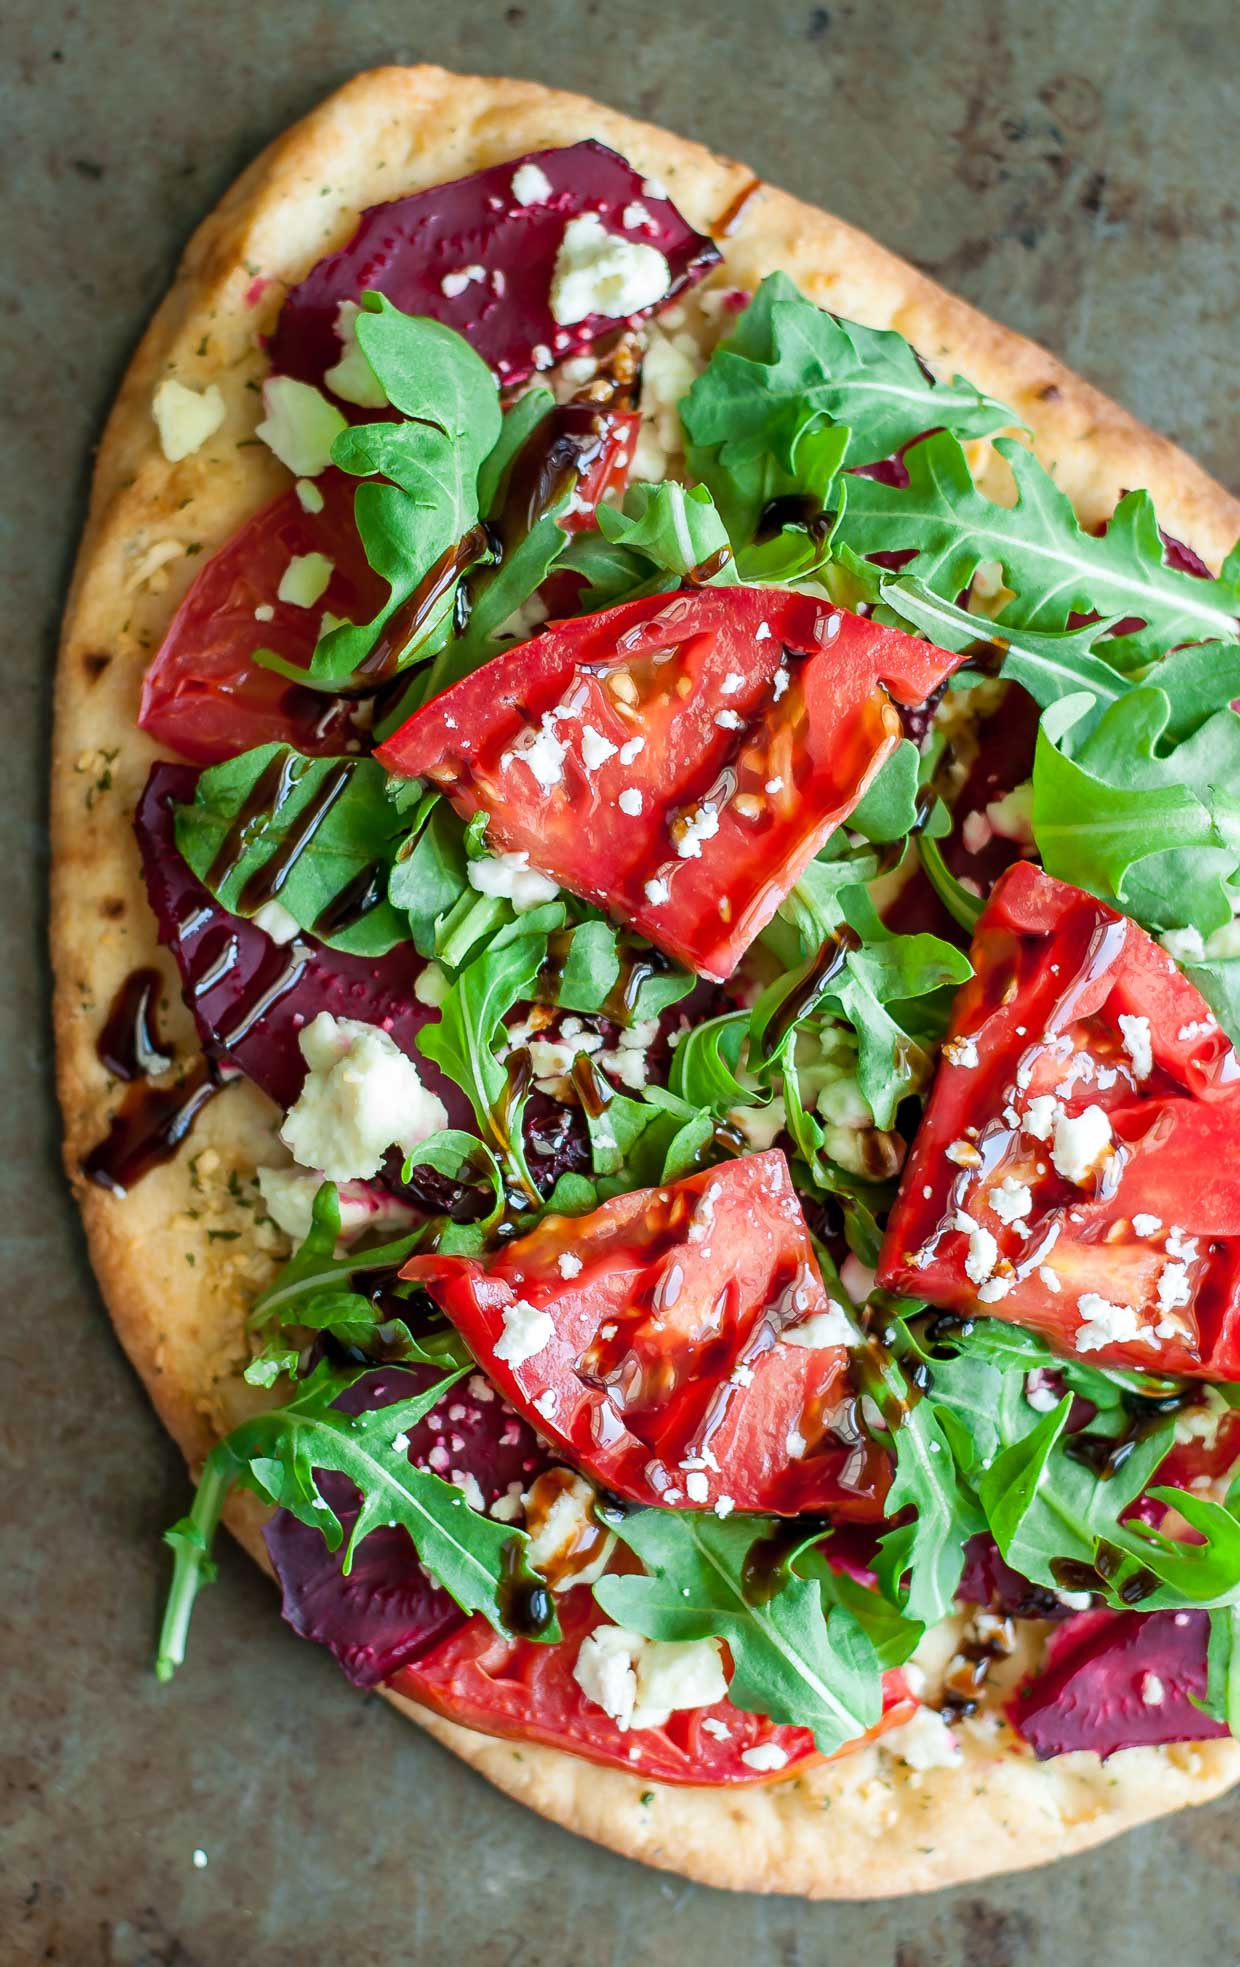 Put on your pizza pants and get your pizza fix with these 8 Easy Pizza Recipes! Gluten-Free, Vegetarian, and Low-Carb options available too! Hellooooo pizza night!